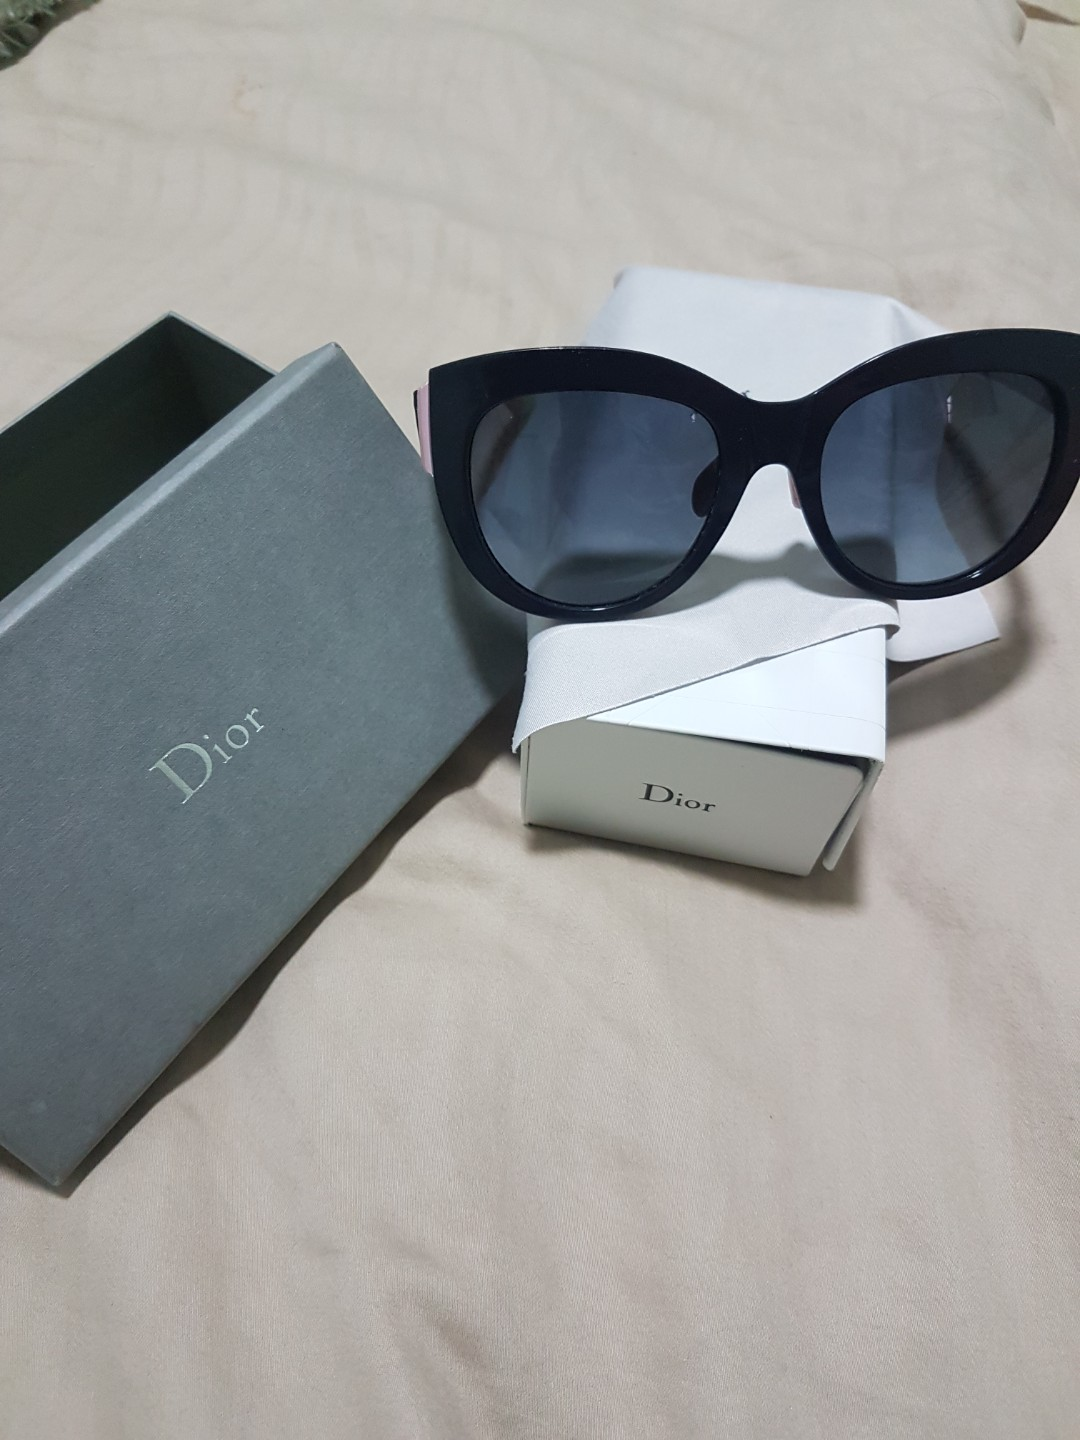 6d715ccb243 Pre Loved Dior sunglasses Authentic